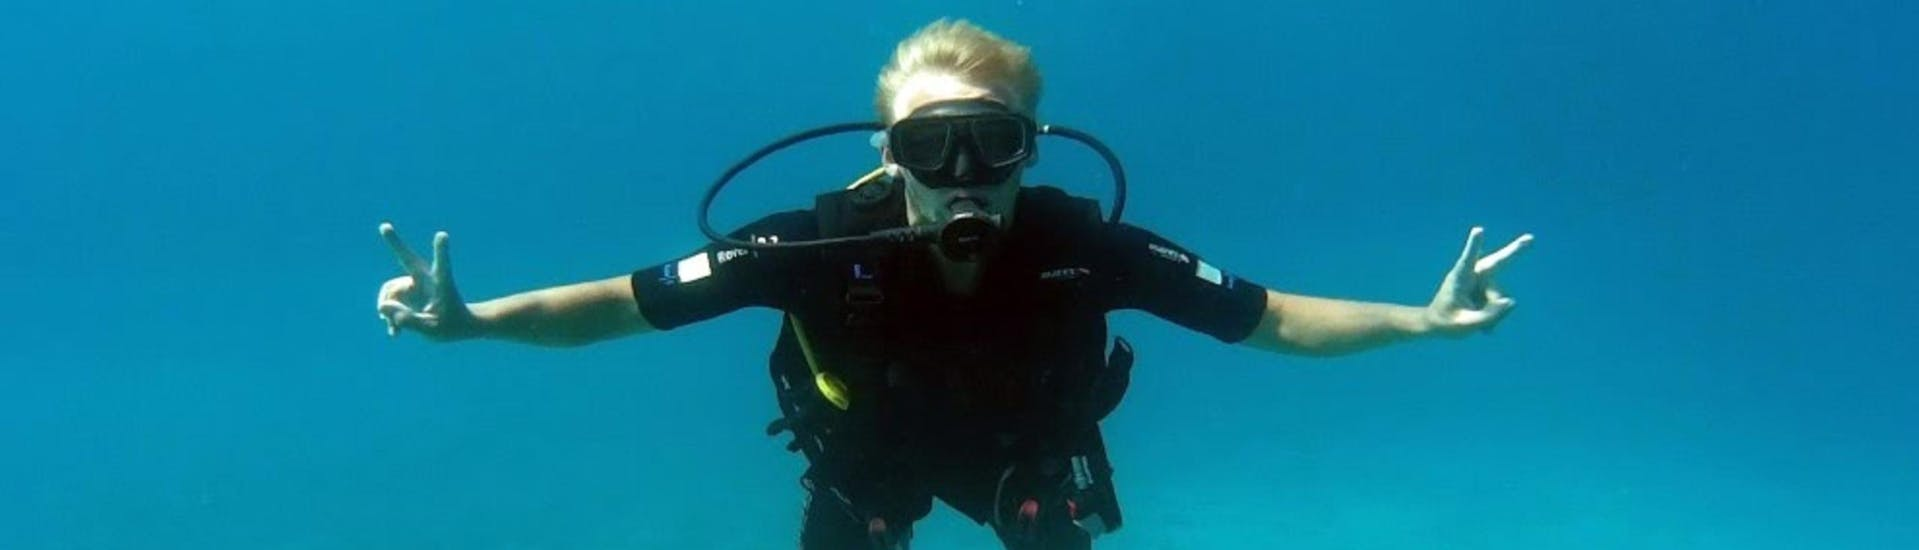 Scuba Diving Course for Beginners - SSI Basic Diver